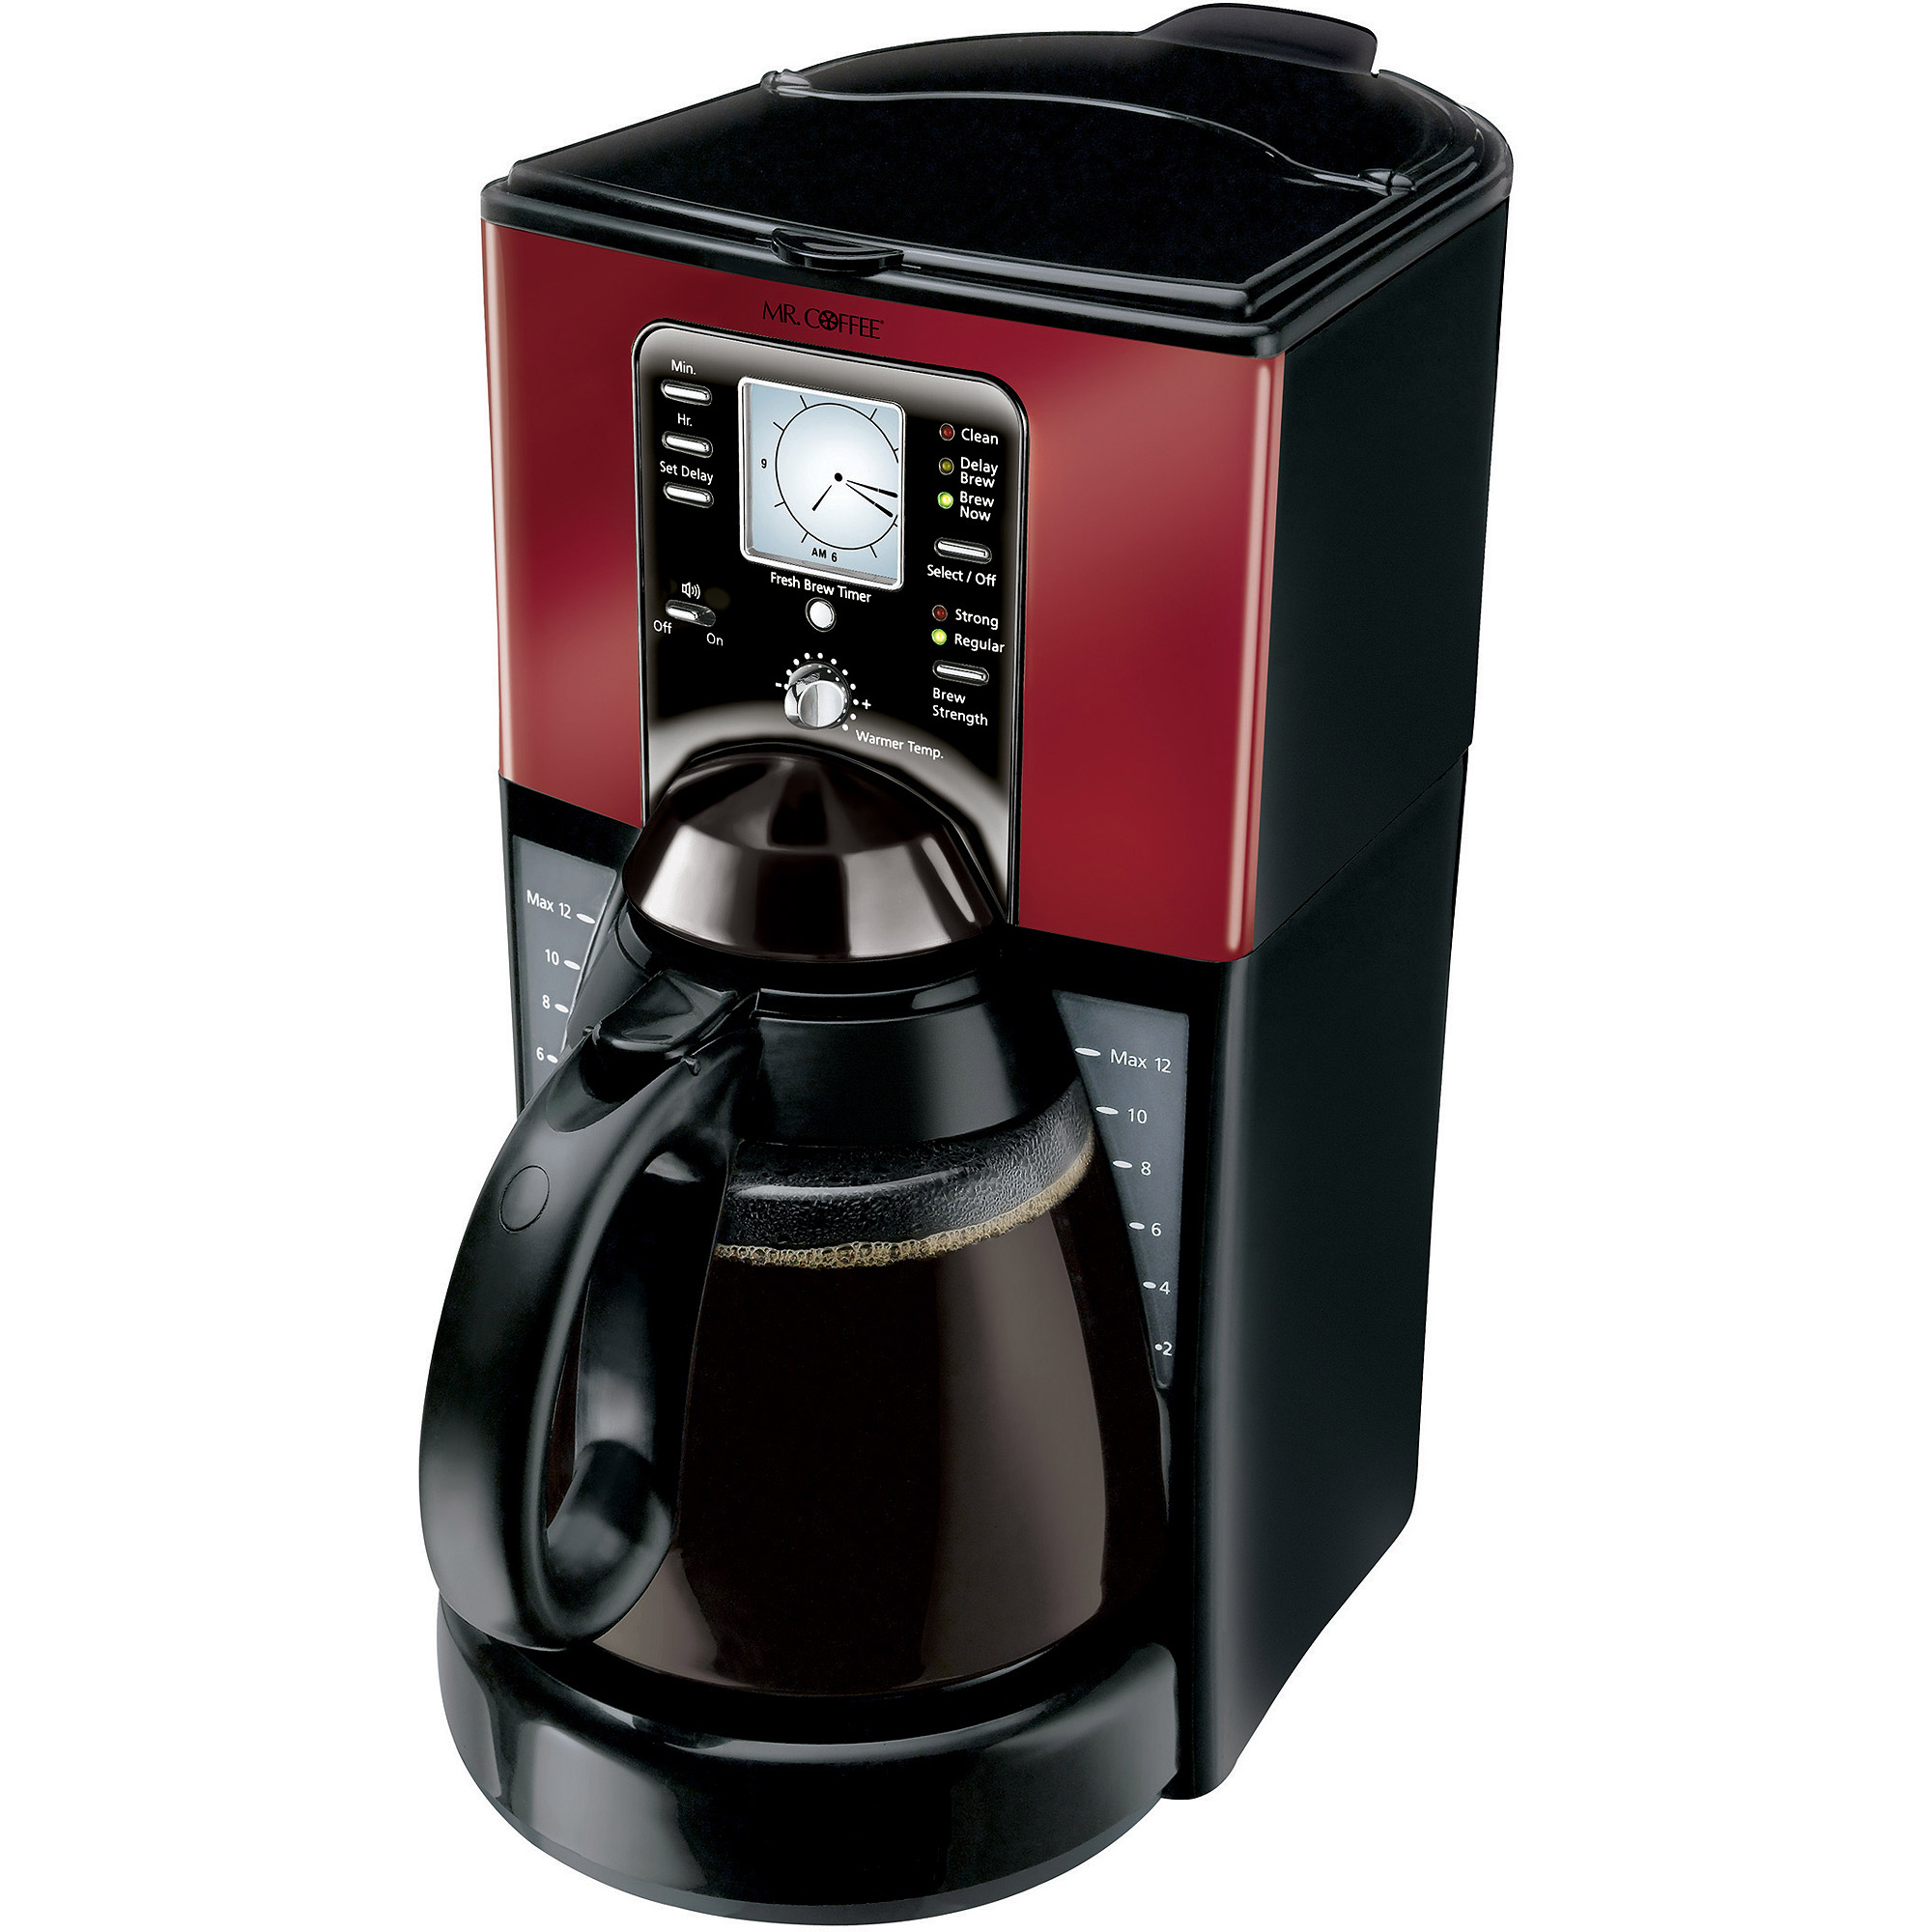 Mr. Coffee FTX Series 12-Cup Programmable Coffee Maker, Black (FTX49-NP)